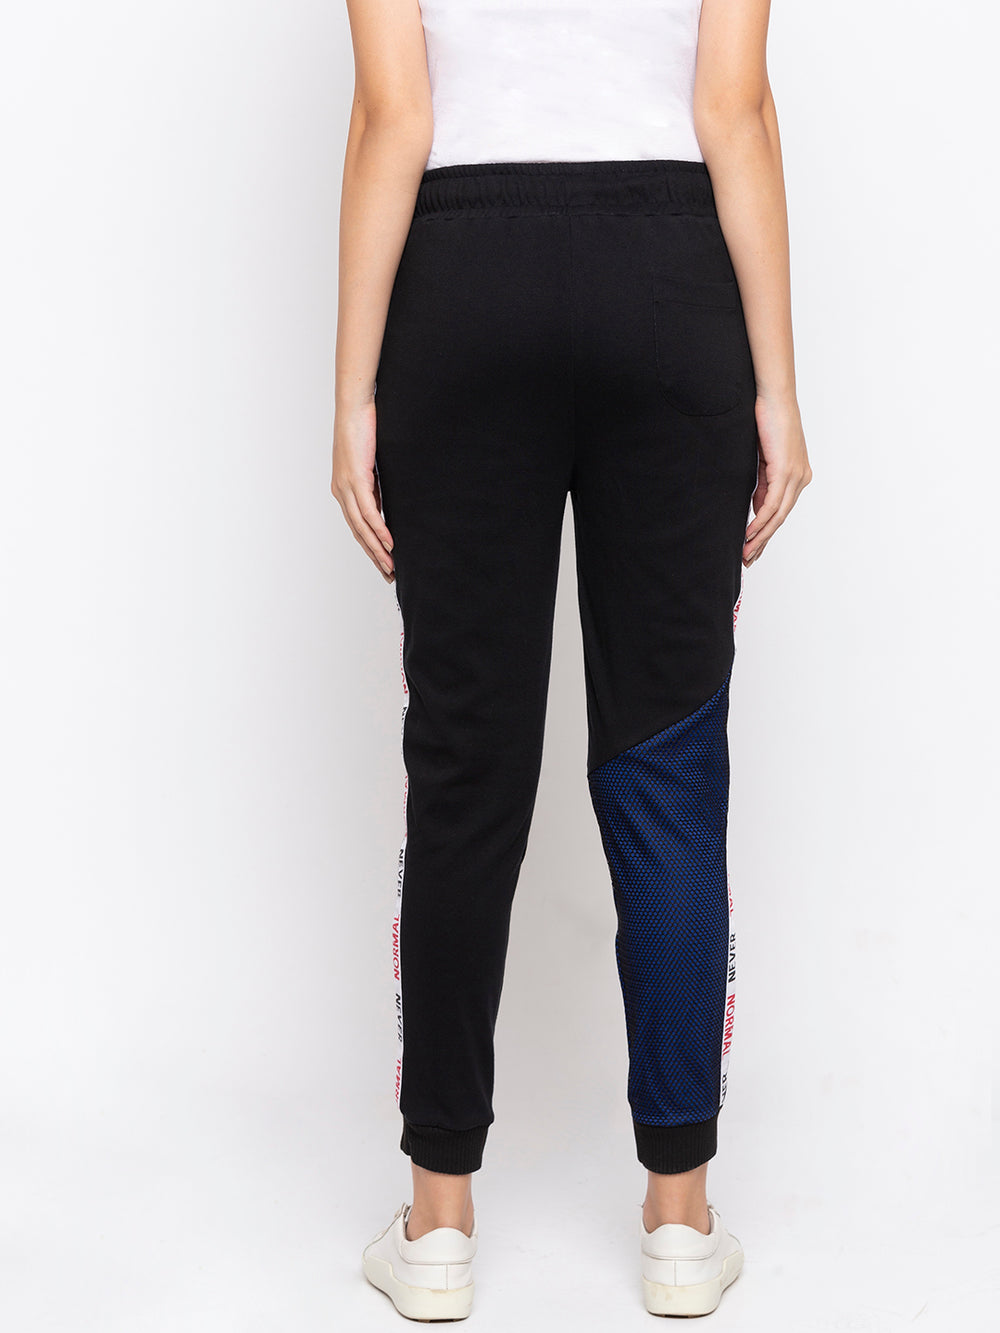 Black Mesh Panelled Never Normal Taped Regular - Fit Joggers